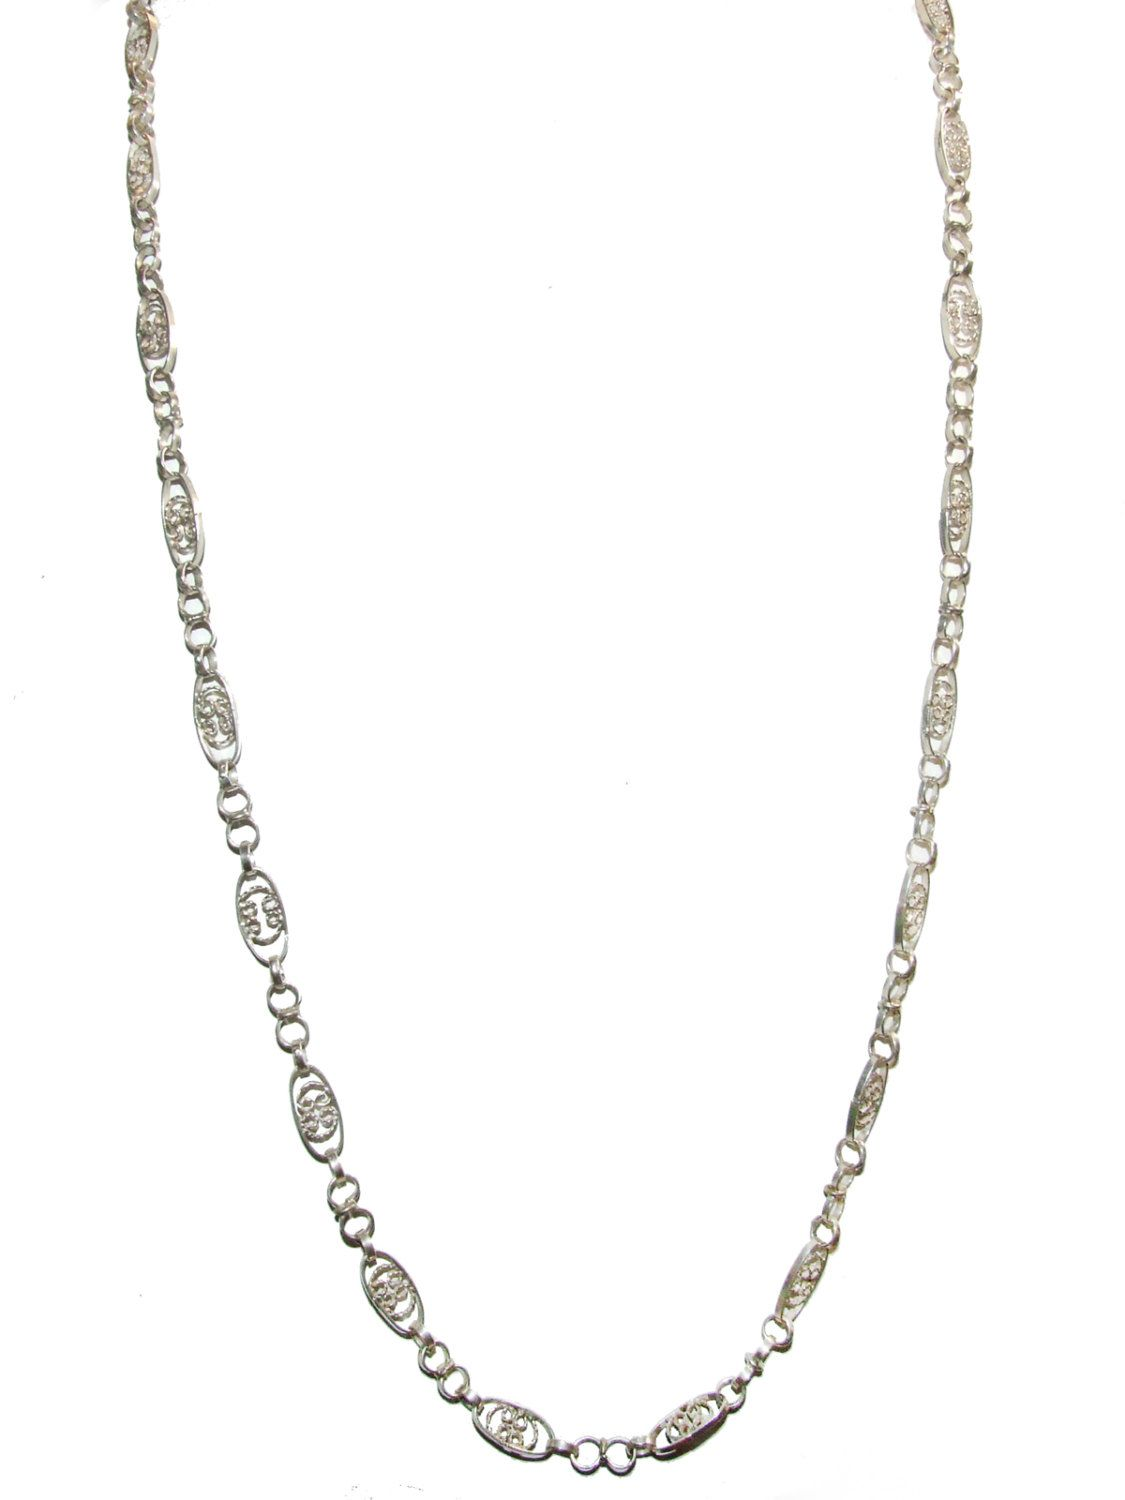 925 Sterling Silver Vintage Mexico Cresent Moon Chain Necklace 17